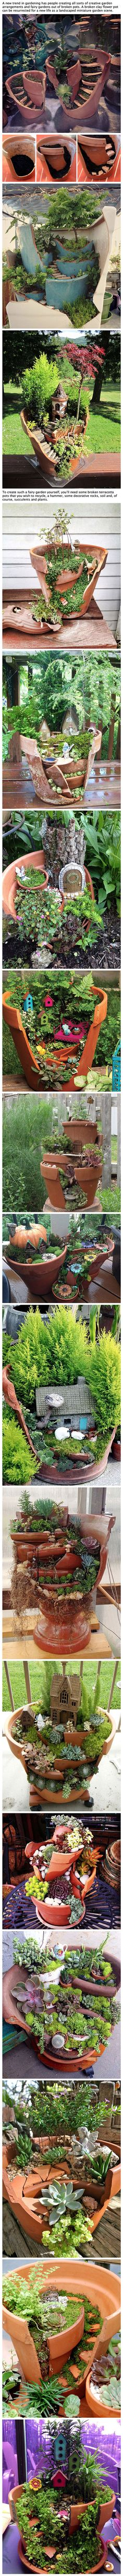 Broken Pots Turned Into Beautiful Fairy Gardens.